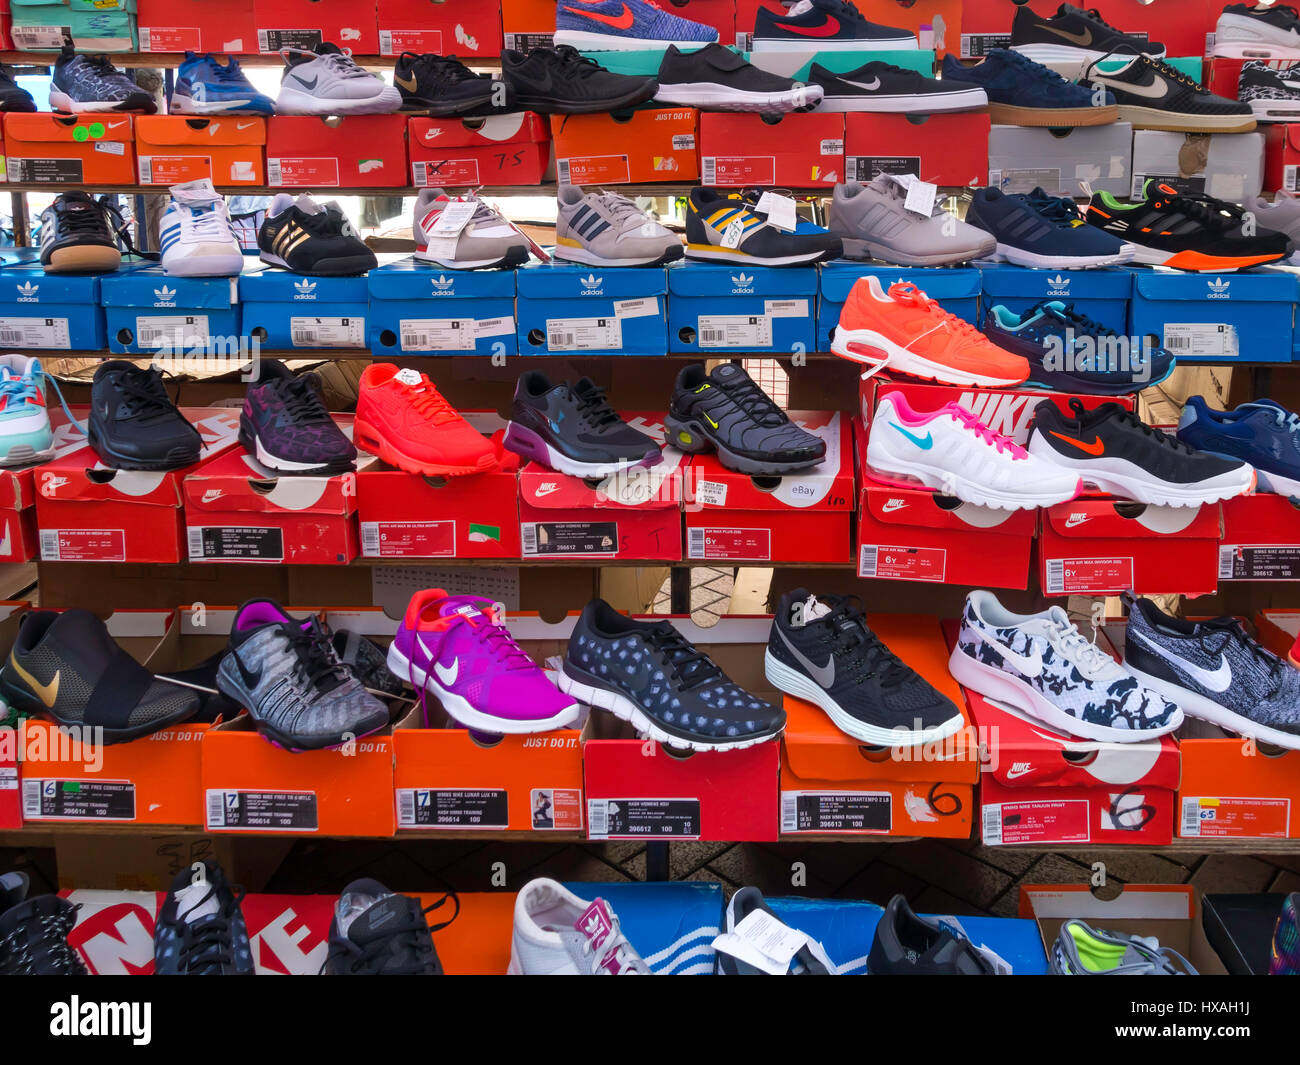 41a36e8dde3 A display of Nike brand trainers for sale on a street market stall ...